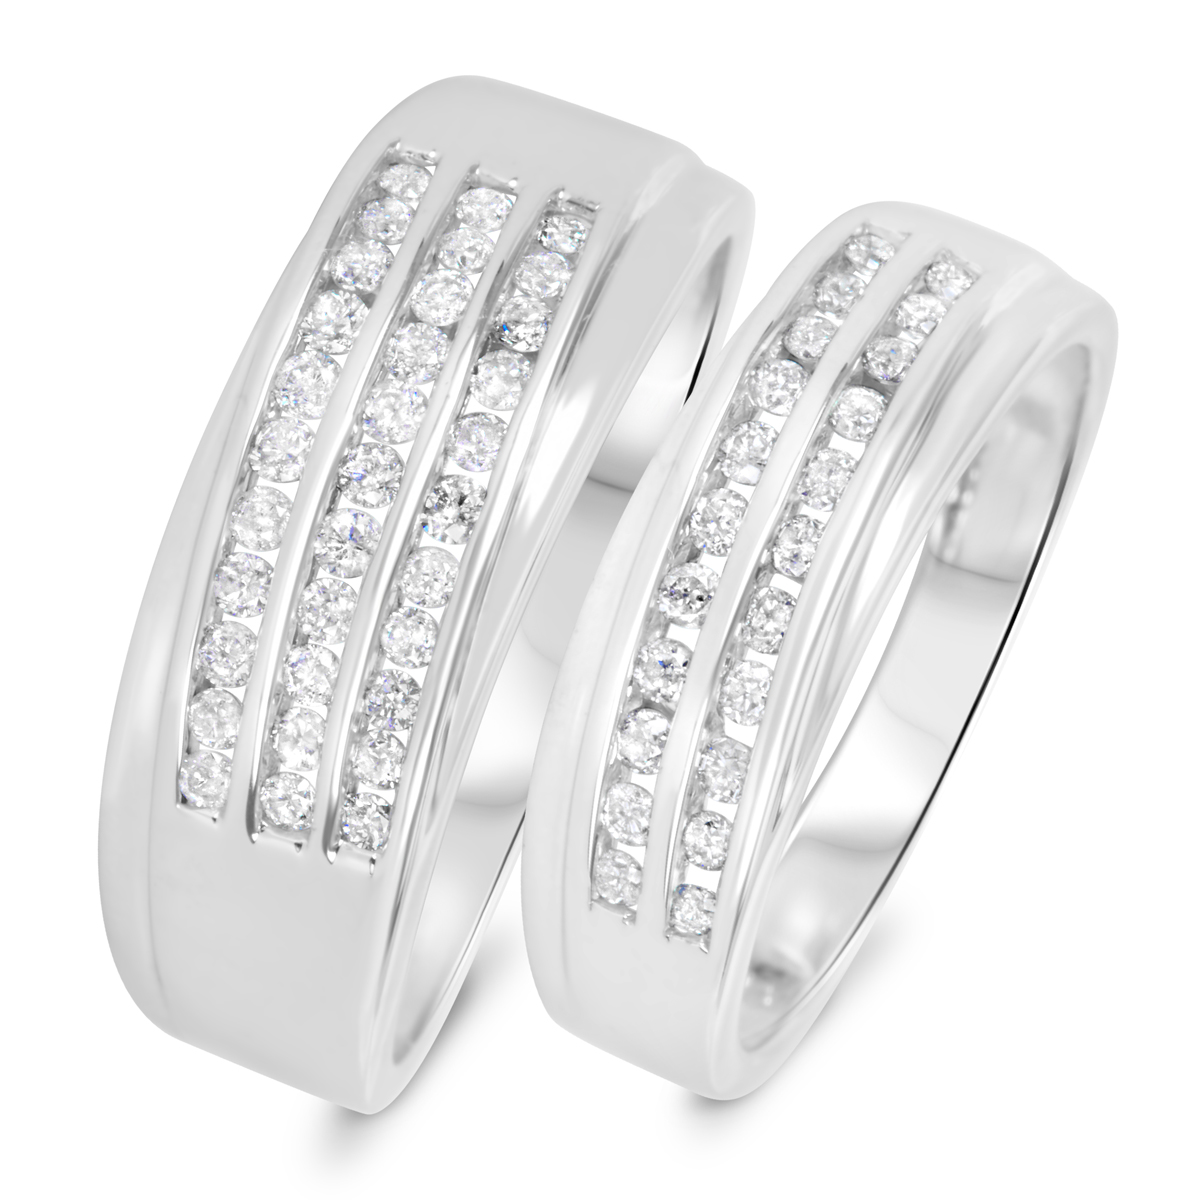 wedding bands sets The Perfect Pair Set of 2 Silver Rings Men s Wedding Band Women s Wedding Ring Silver Wedding Rings Wedding Band Set Traditional Bands